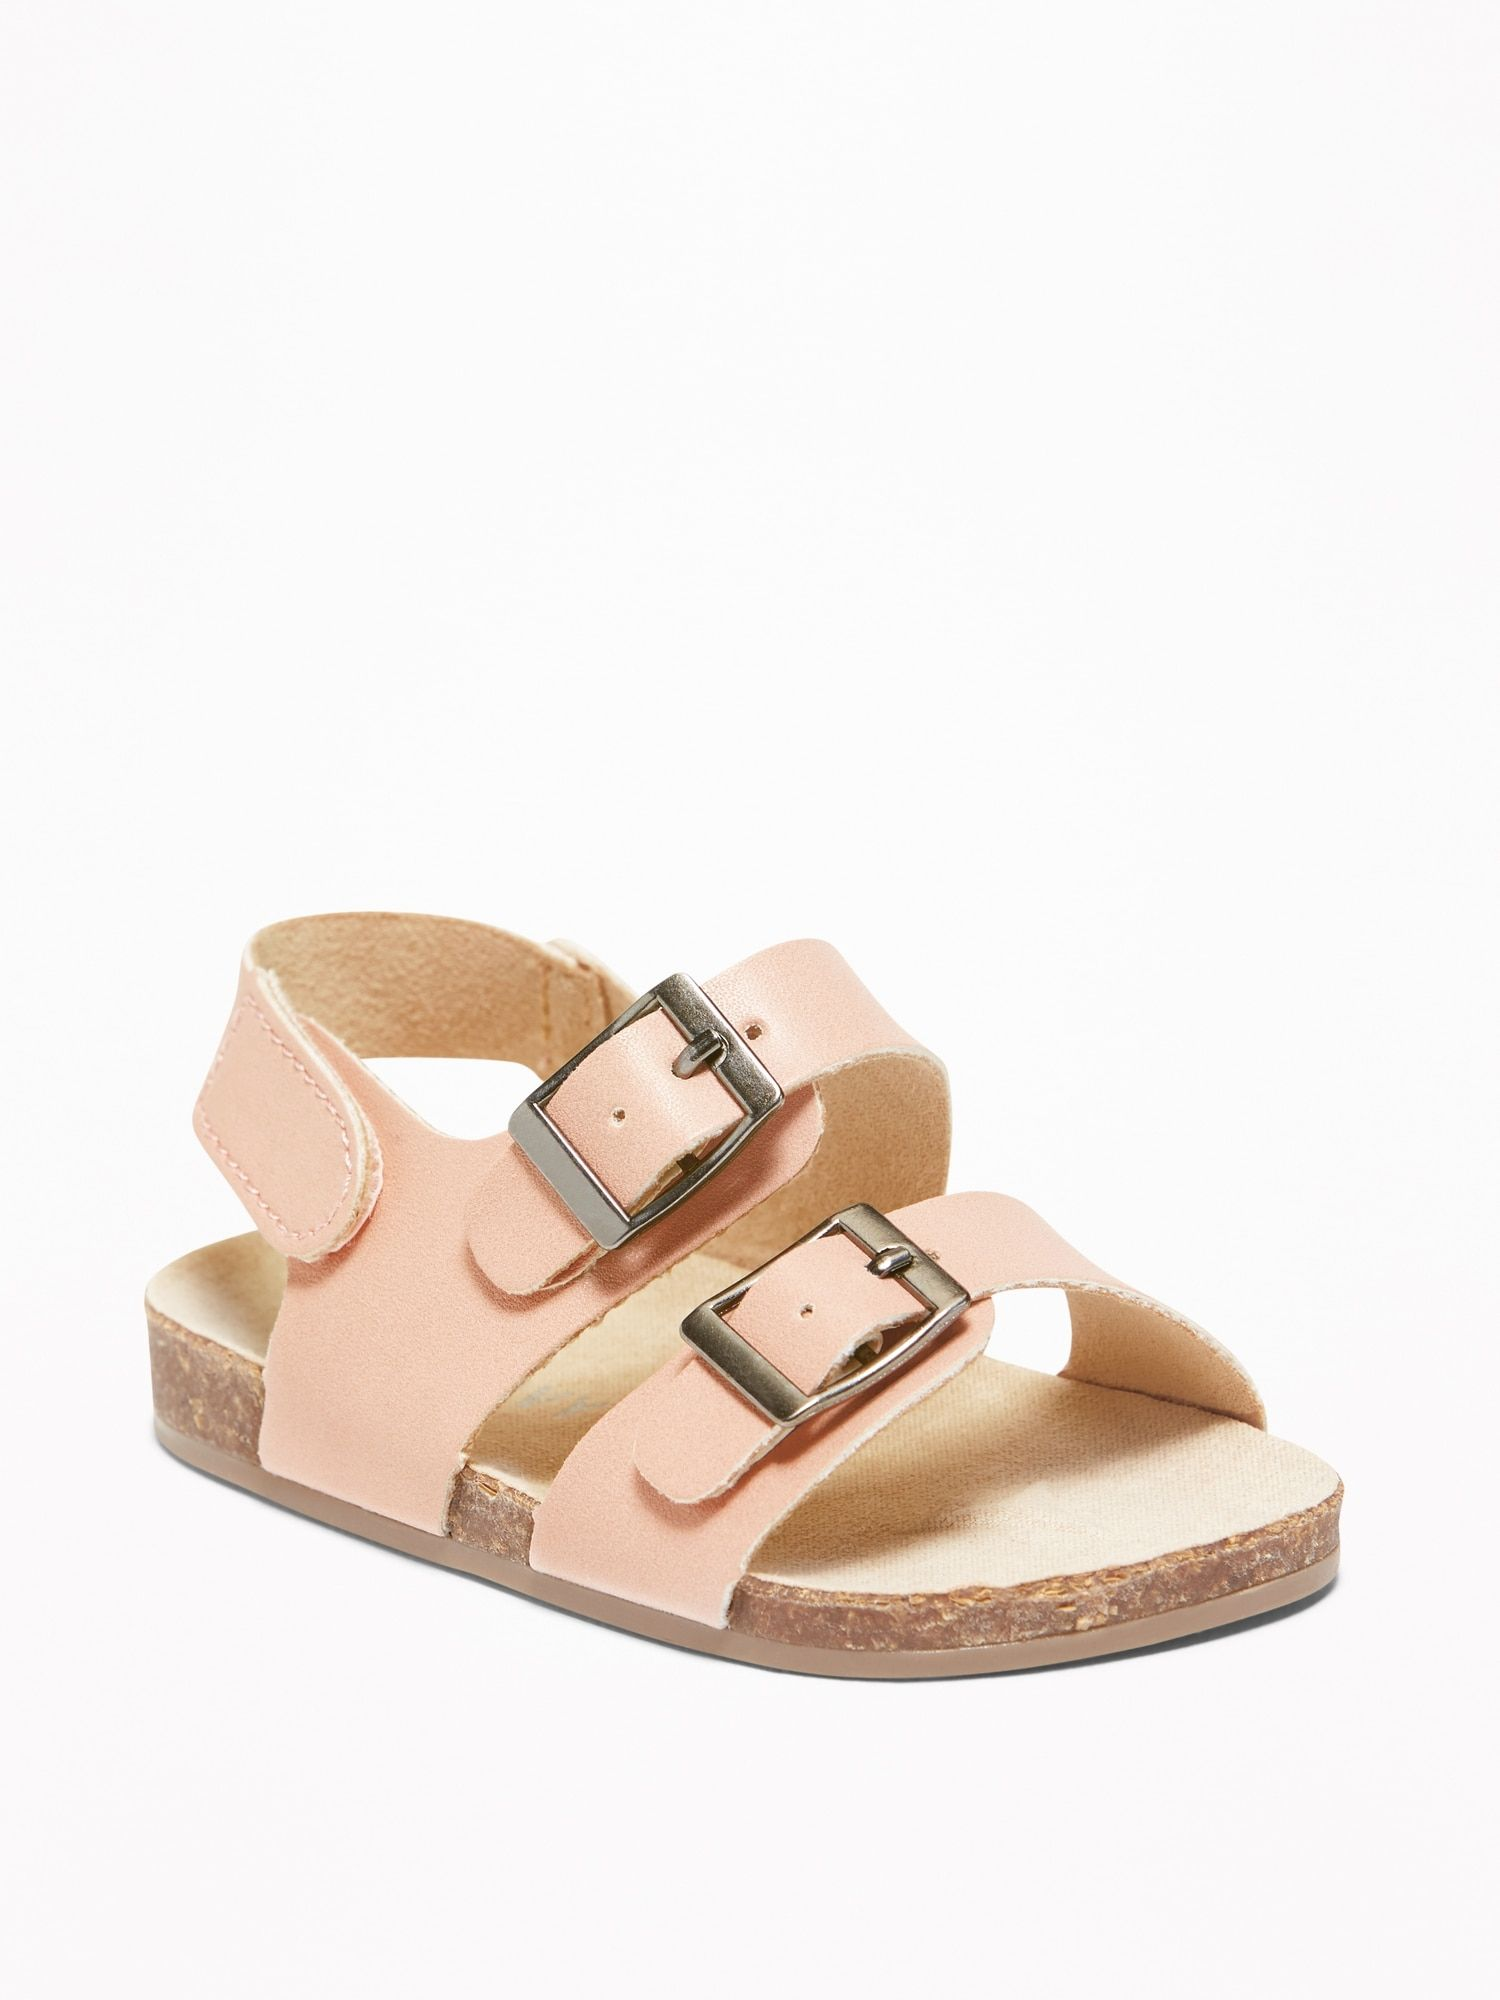 old navy sandals baby